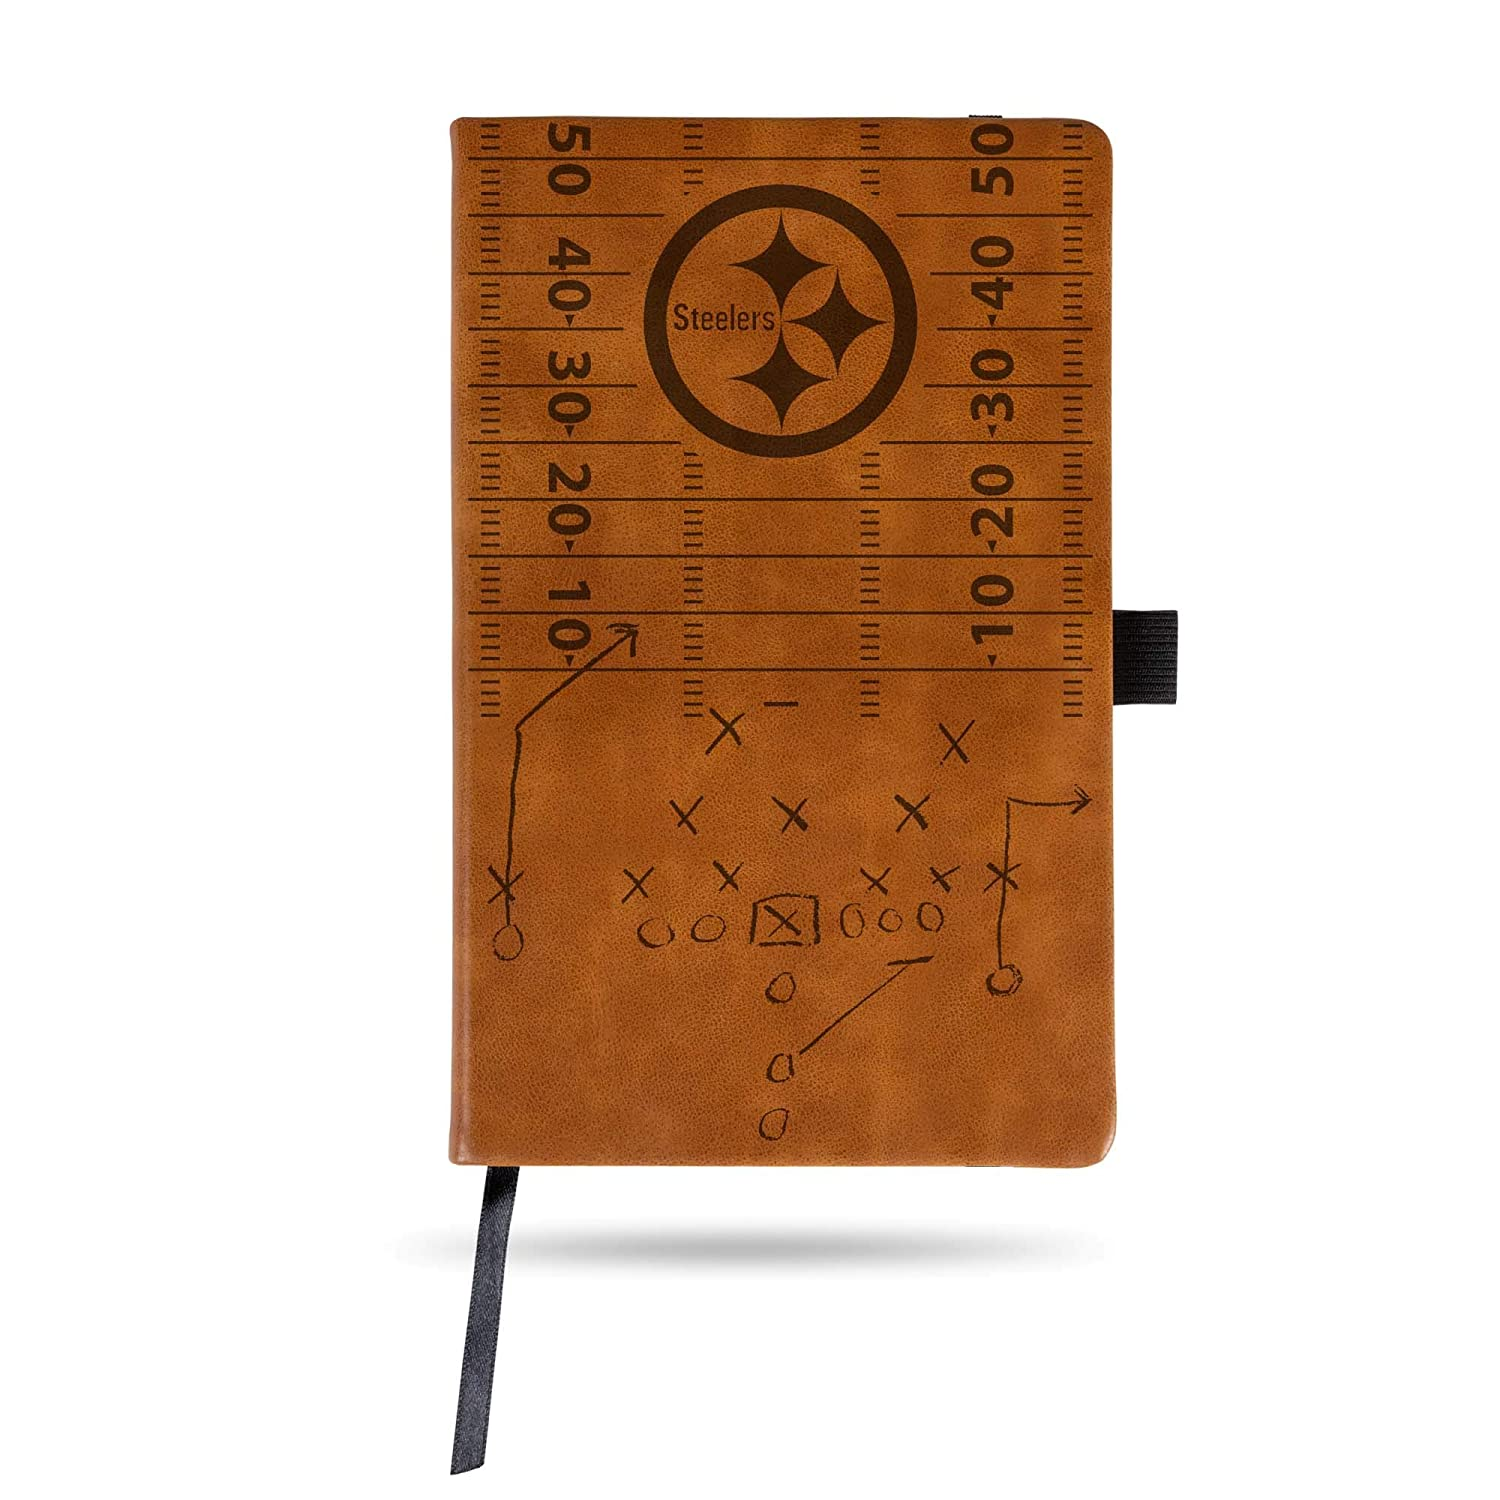 Rico Industries Steelers Laser Engraved Brown Notepad with Elastic Band